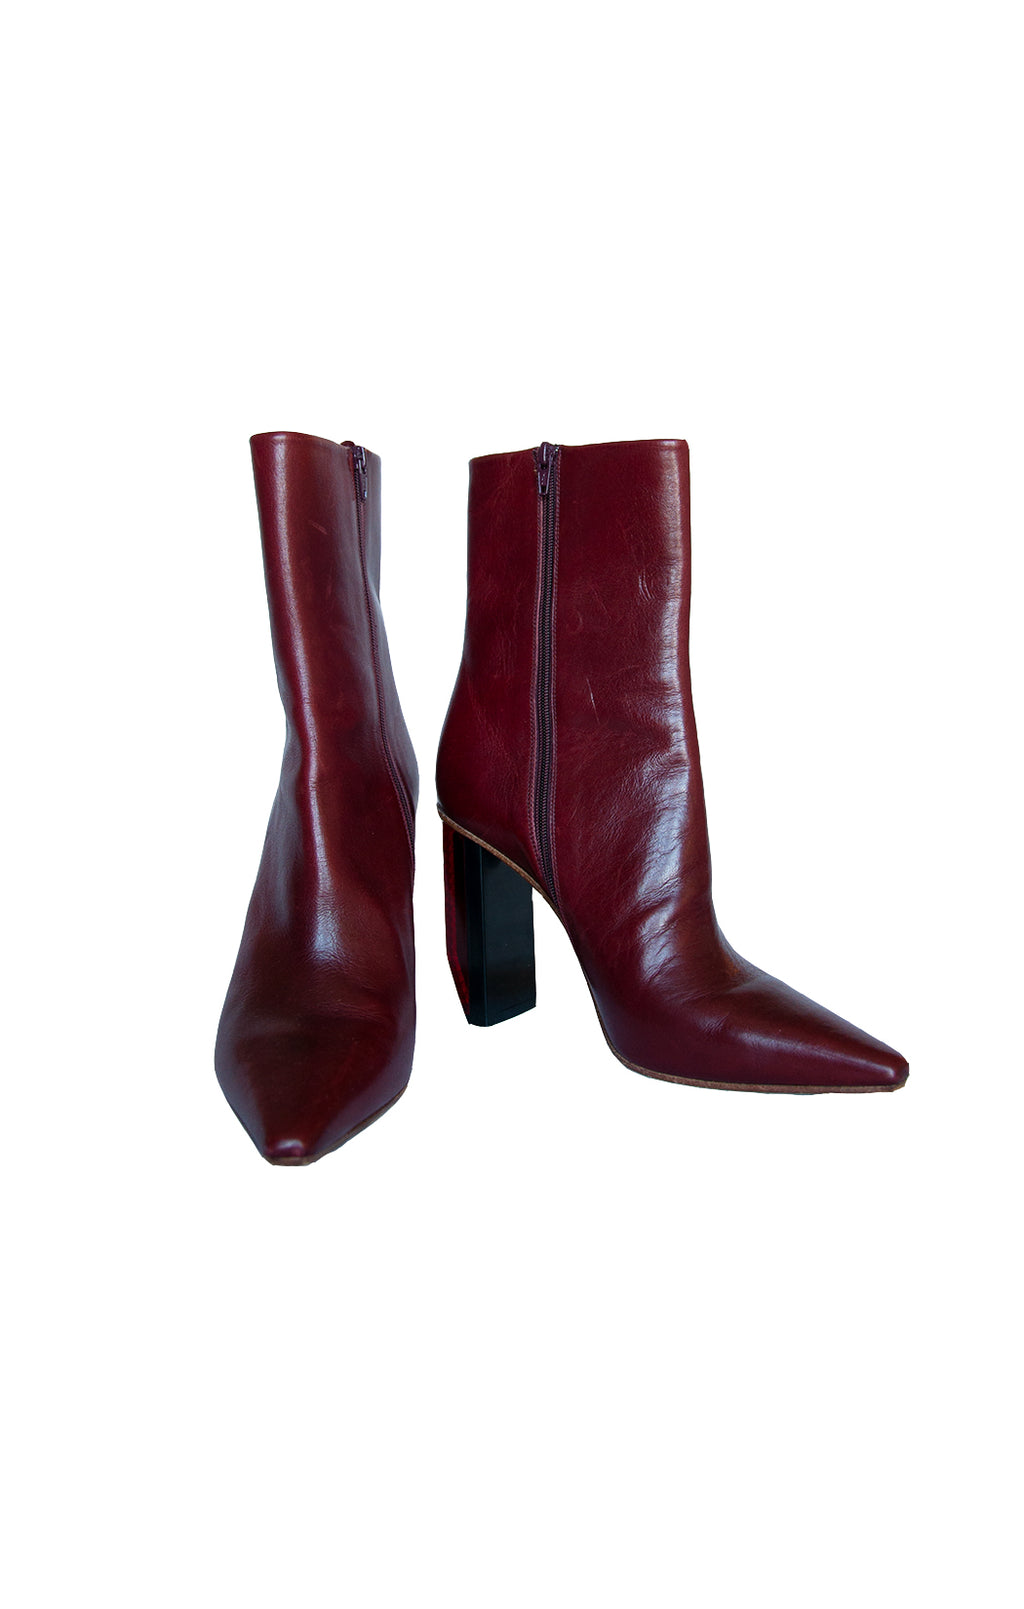 Front view of VETEMENTS Ankle Boots Size: IT 38 (US 8)